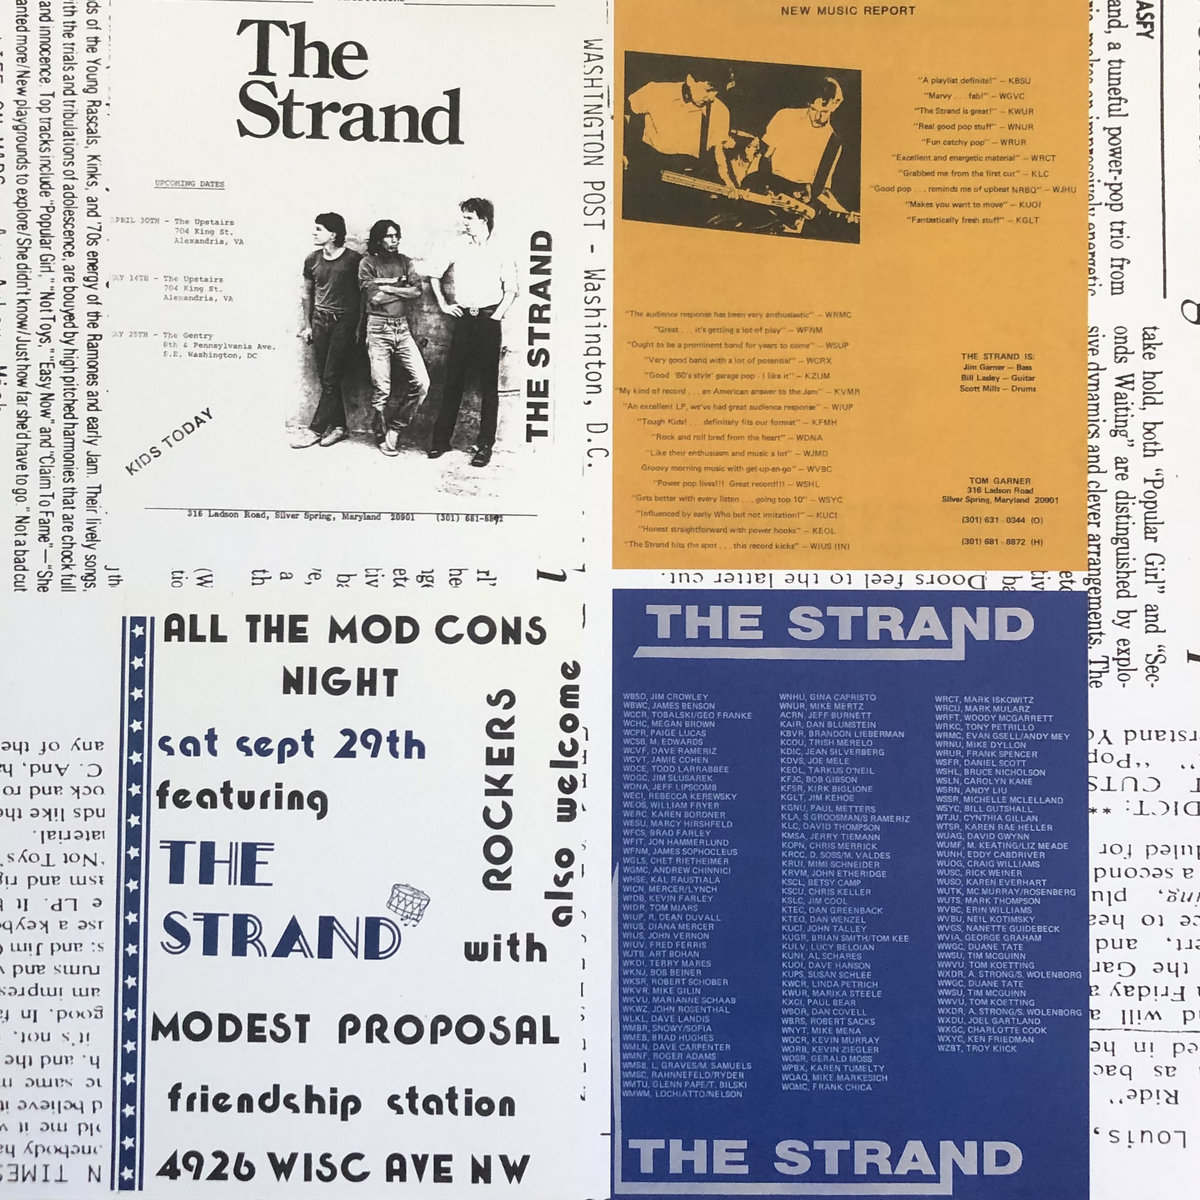 The Strand Seconds Waiting 83 Virginia Archival Dig002 Dig Records Check out new themes, send gifs, find every photo you've ever. seconds waiting lp download